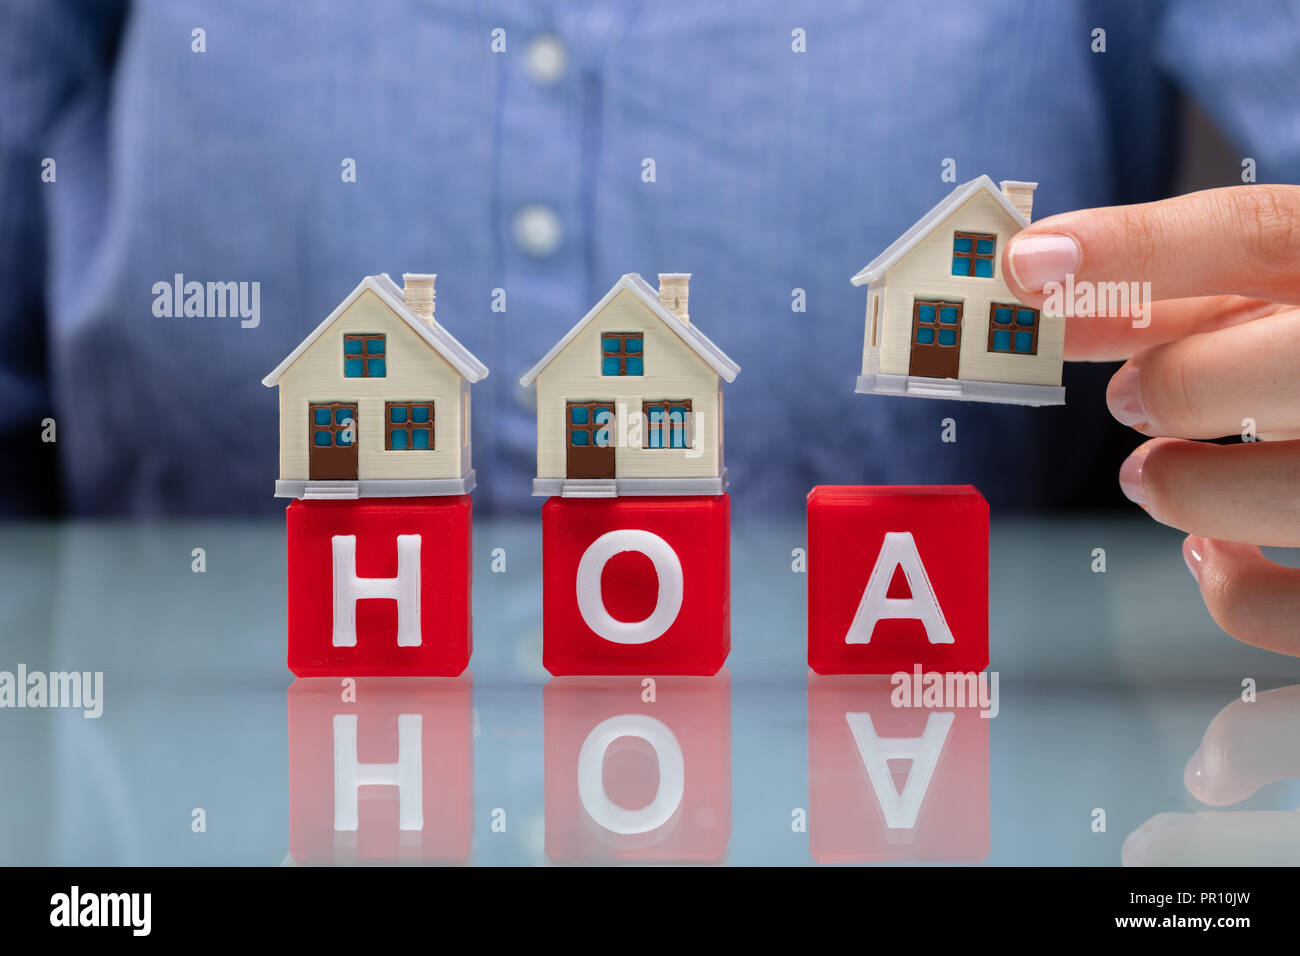 Businesswoman's Hand Placing House Models On Red HOA Cubic Blocks Over Desk - Stock Image